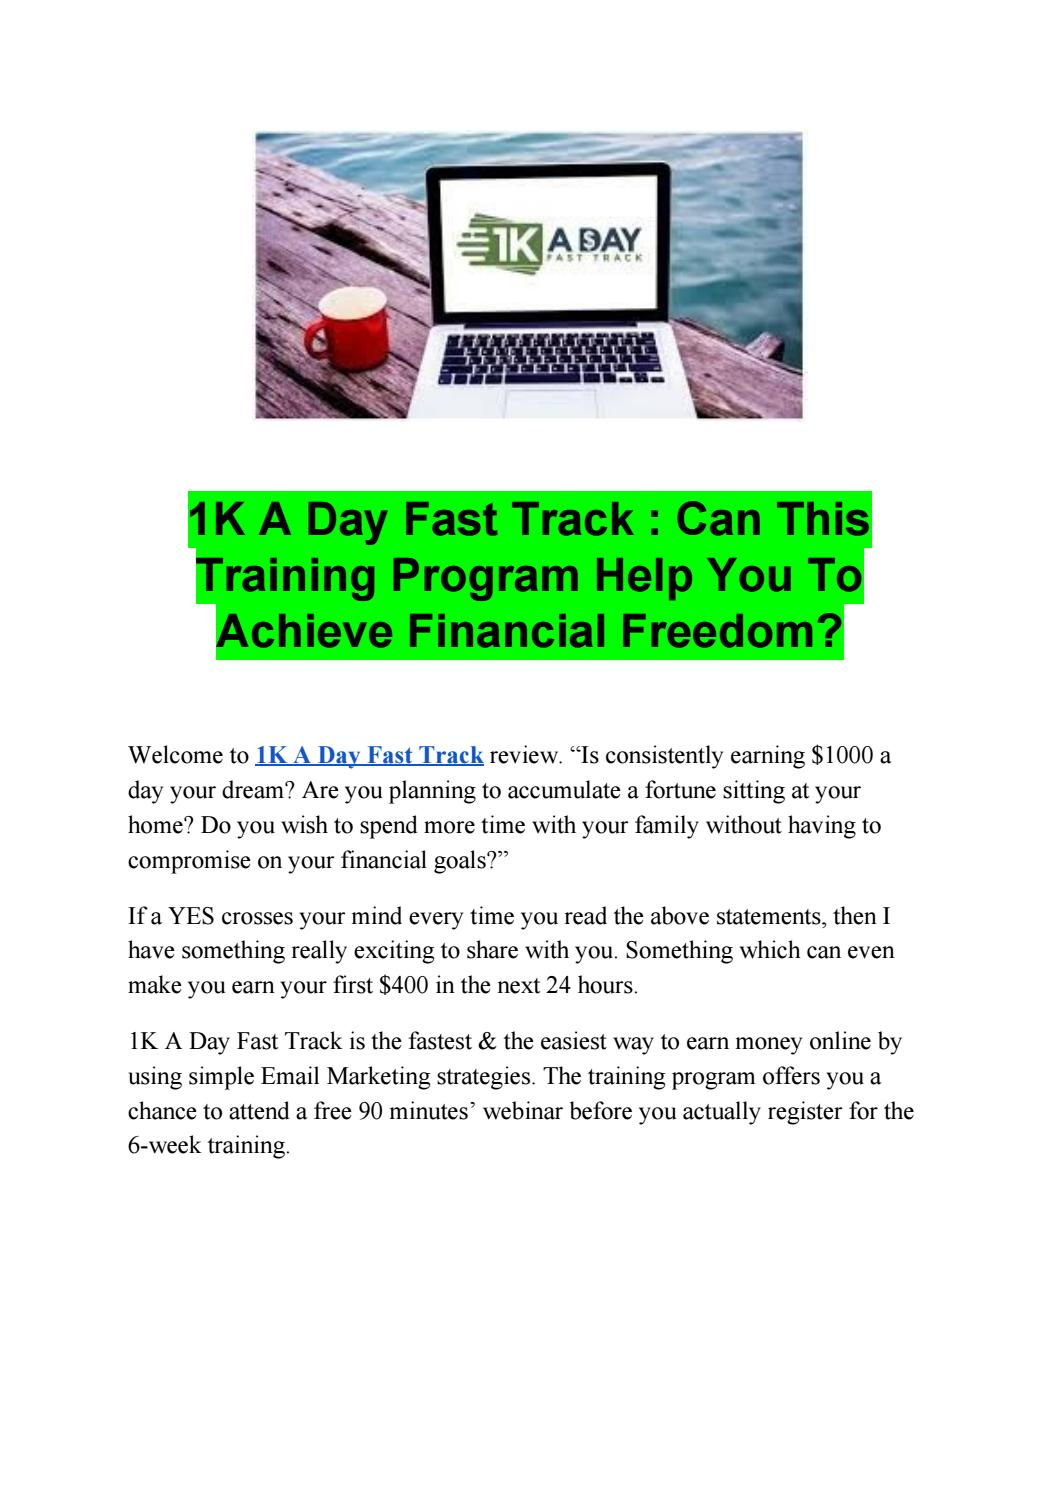 1k A Day Fast Track Training Program Coupons March